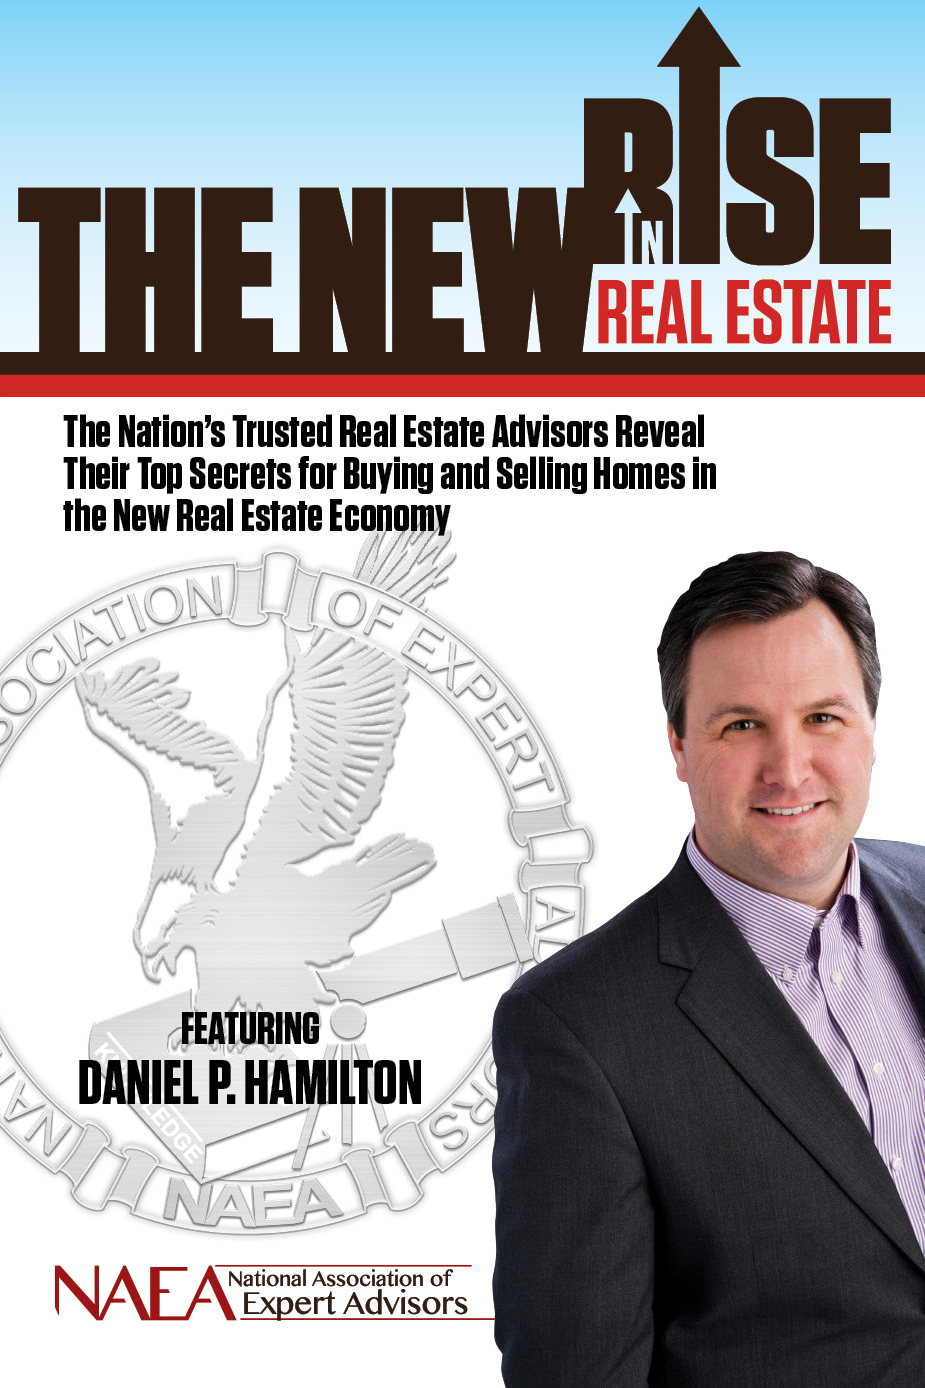 New Rise in Real Estate Book Jacket